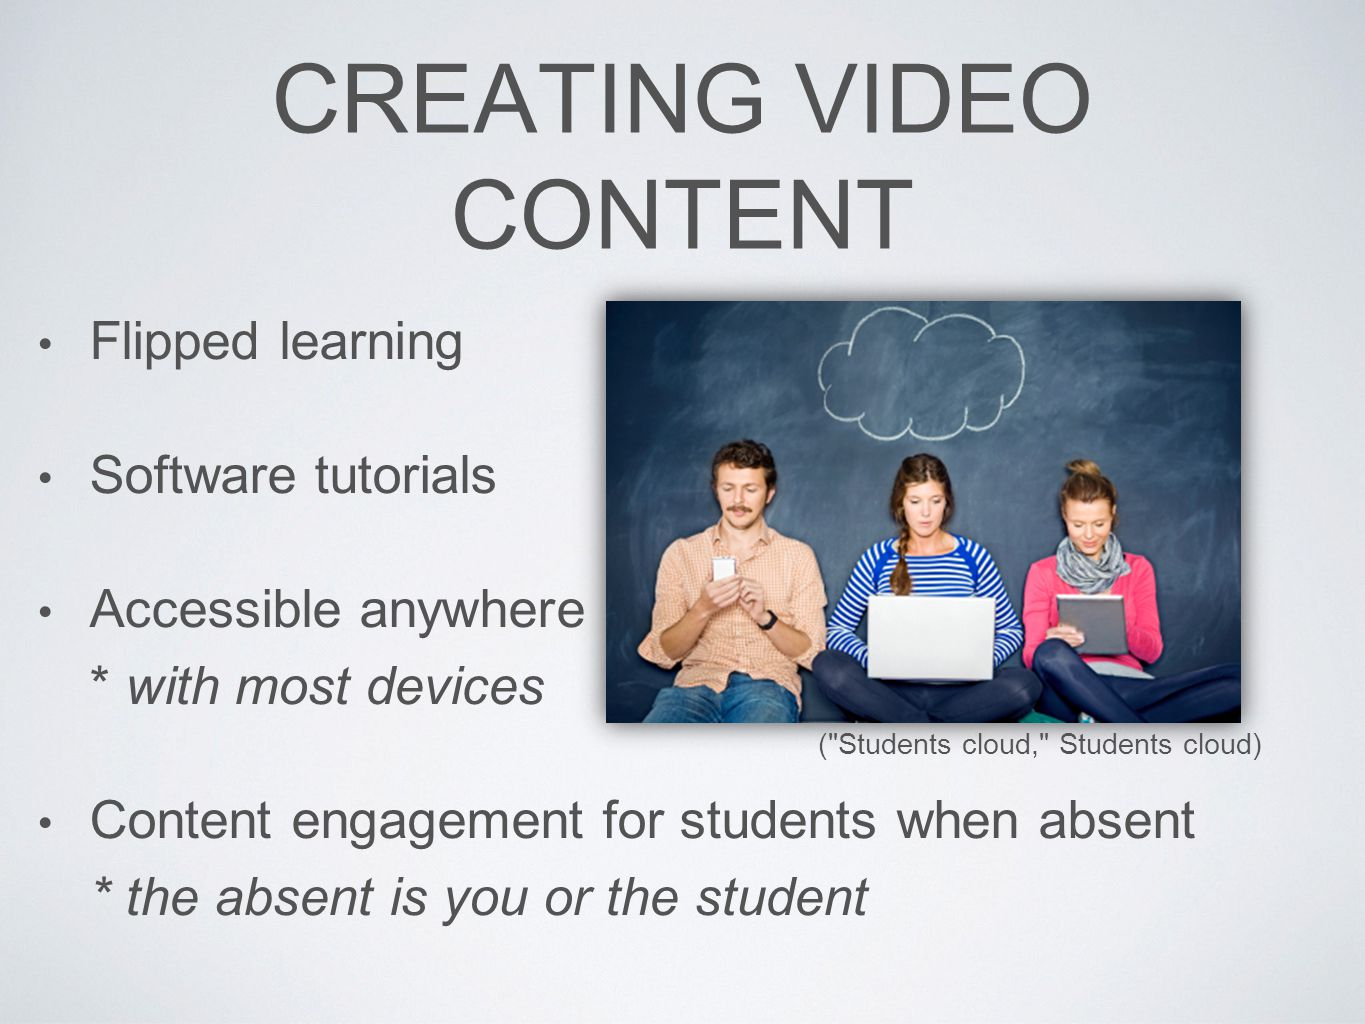 CREATING VIDEO CONTENT Flipped learning Software tutorials Accessible anywhere * with most devices Content engagement for students when absent * the absent is you or the student ( Students cloud, Students cloud)